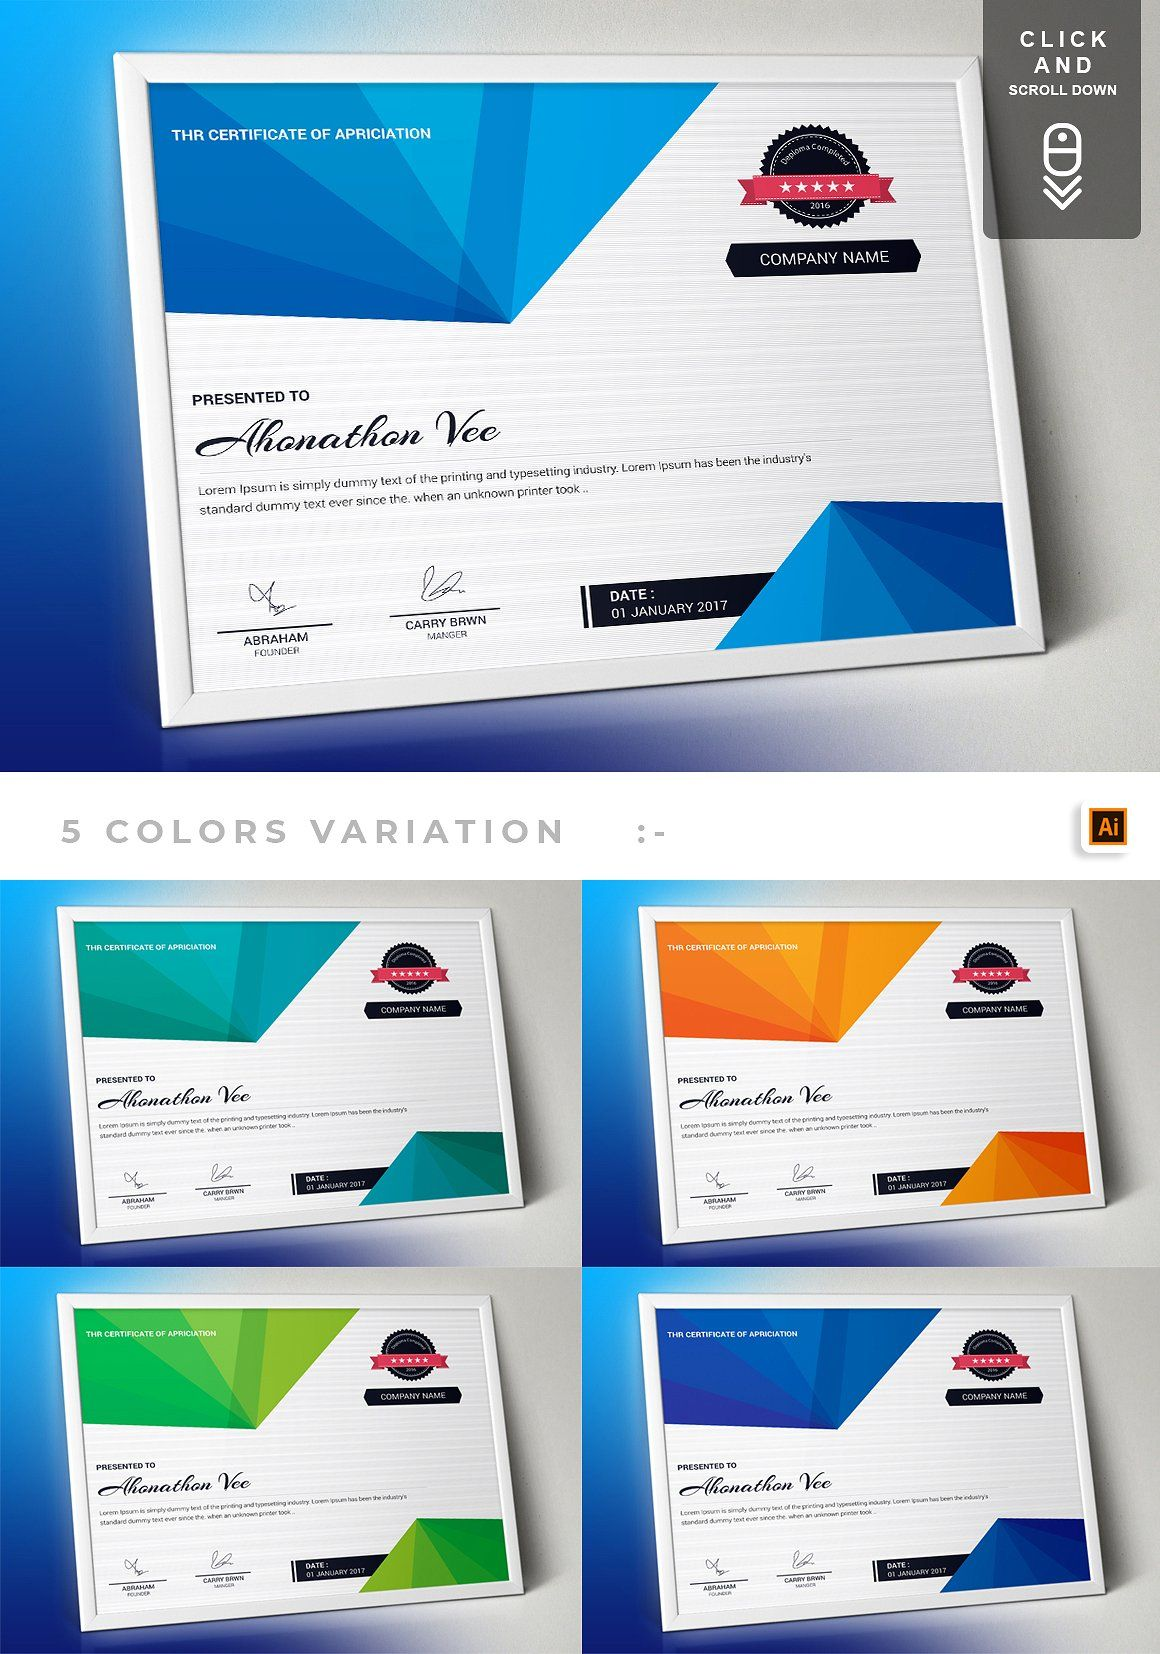 Website Design Inspiration Corporate Business Certificate Template Bundle Key Features Quick Easy Of Reciation